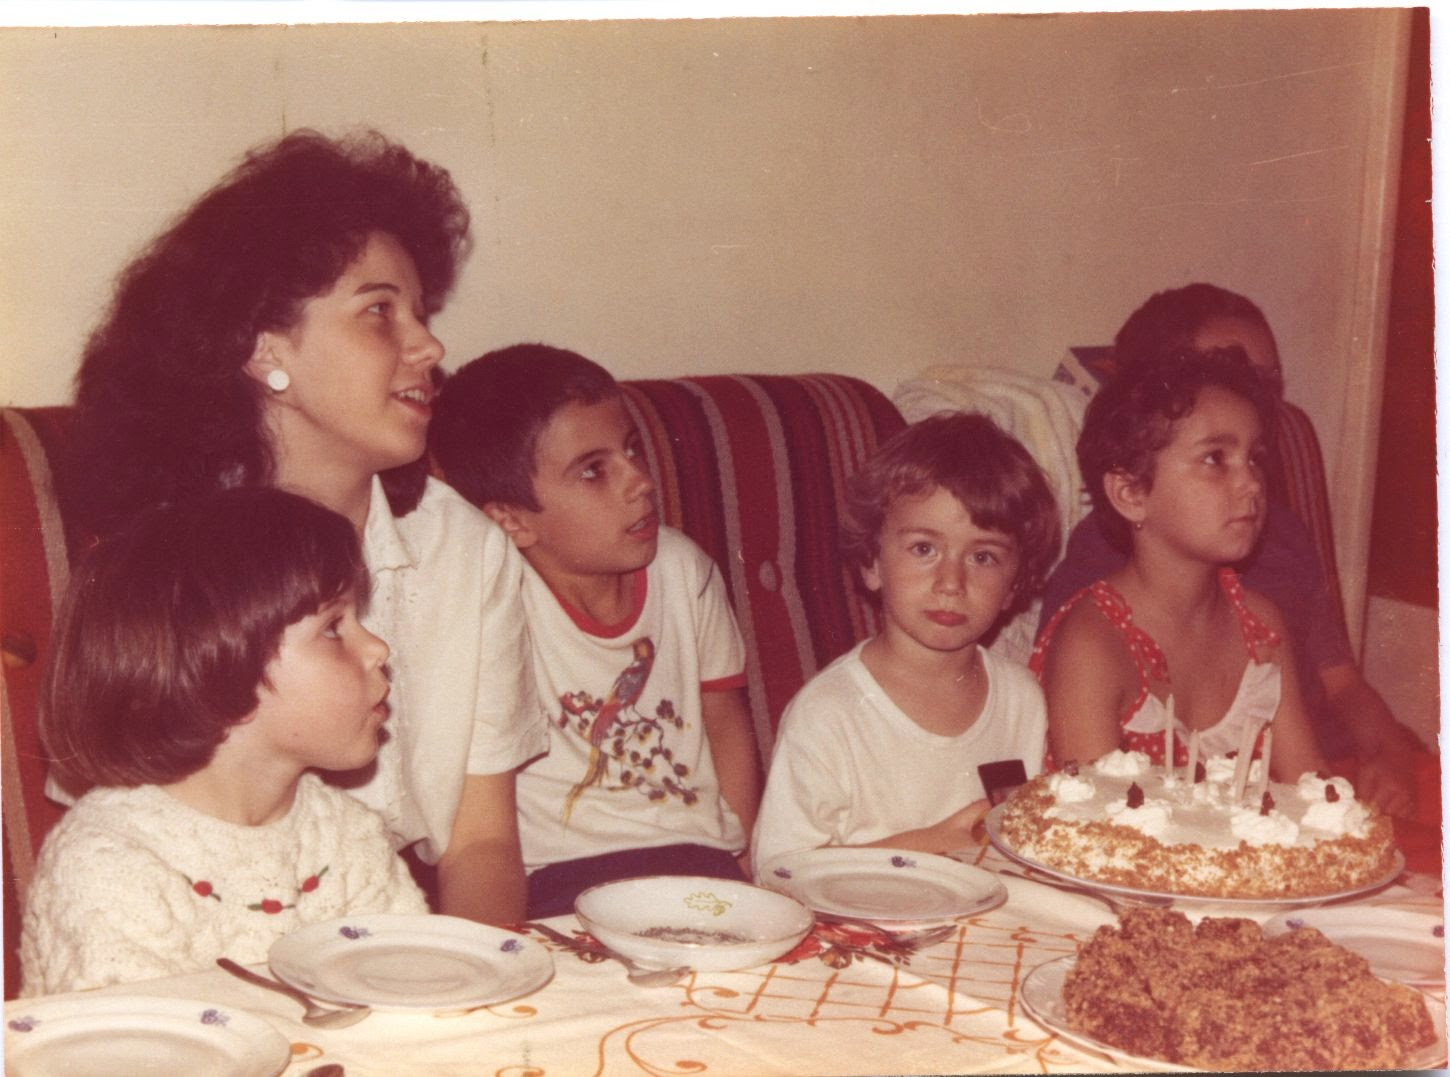 Olivia Maria, Silviu Marcov, Silviu Jr.Craciunas, Irina's Birthday, May 17, 1985 Bucharest